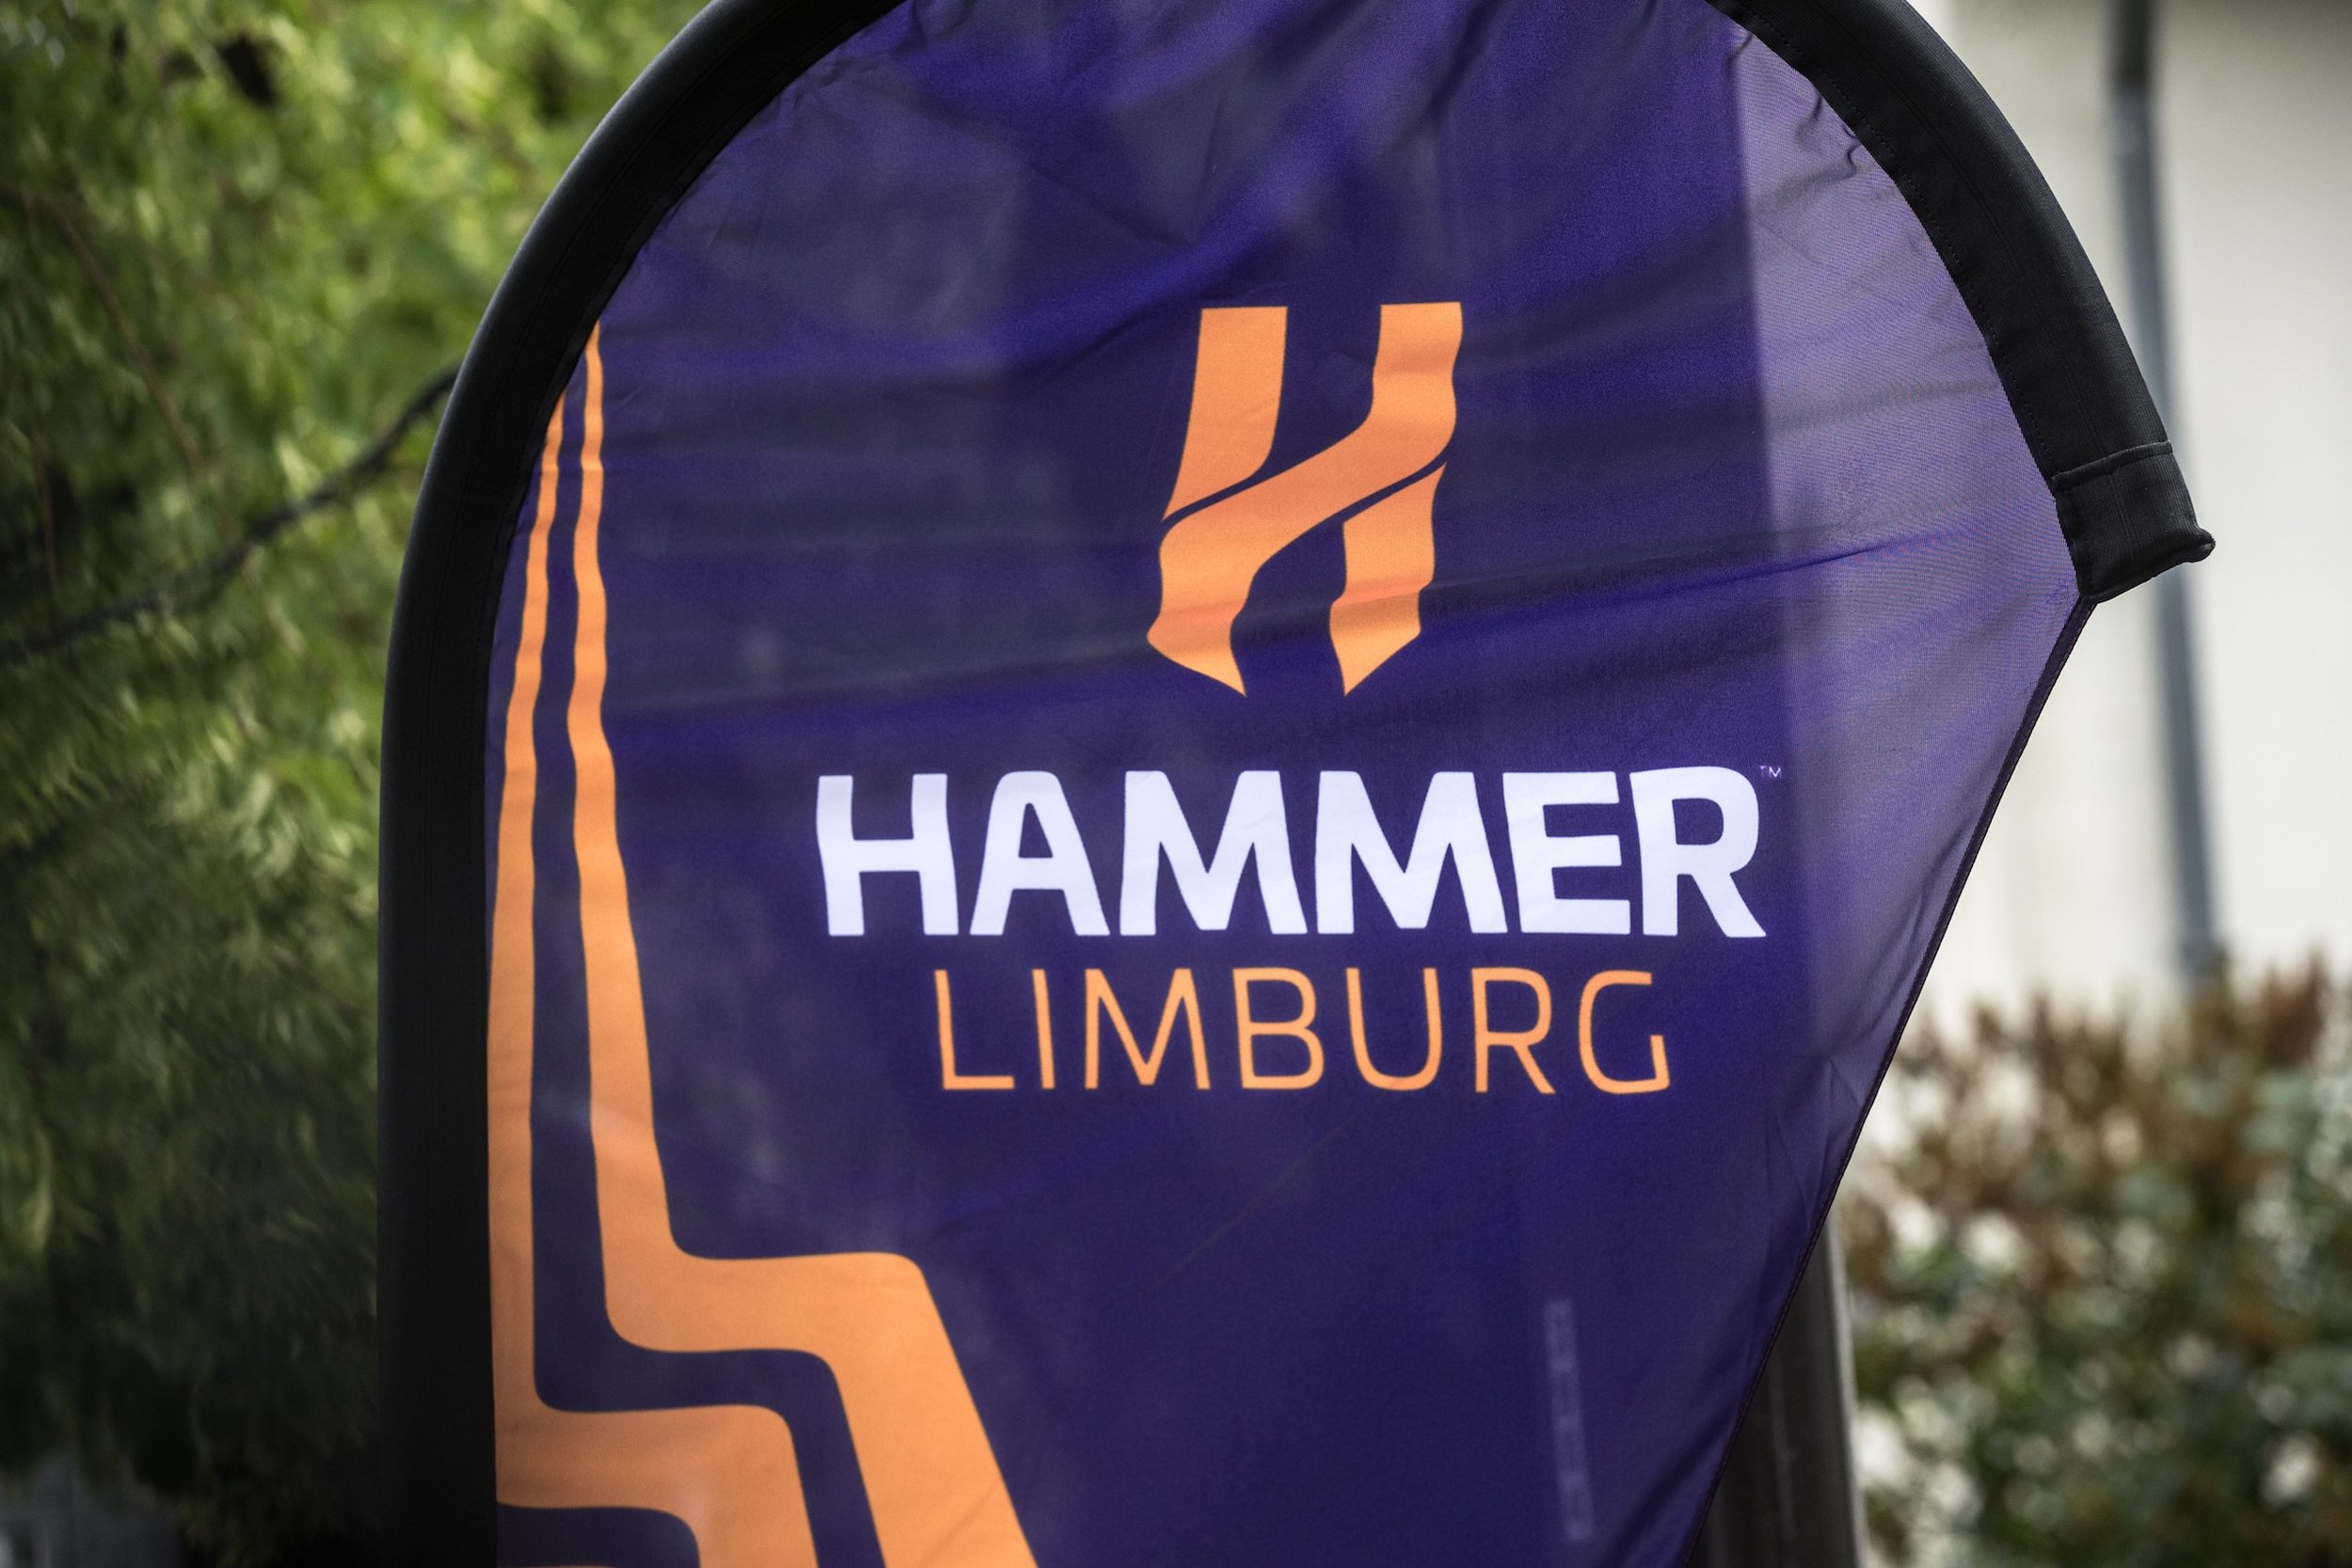 Hammer Limburg will host three packed days of racing, amateur rides, a concert and more